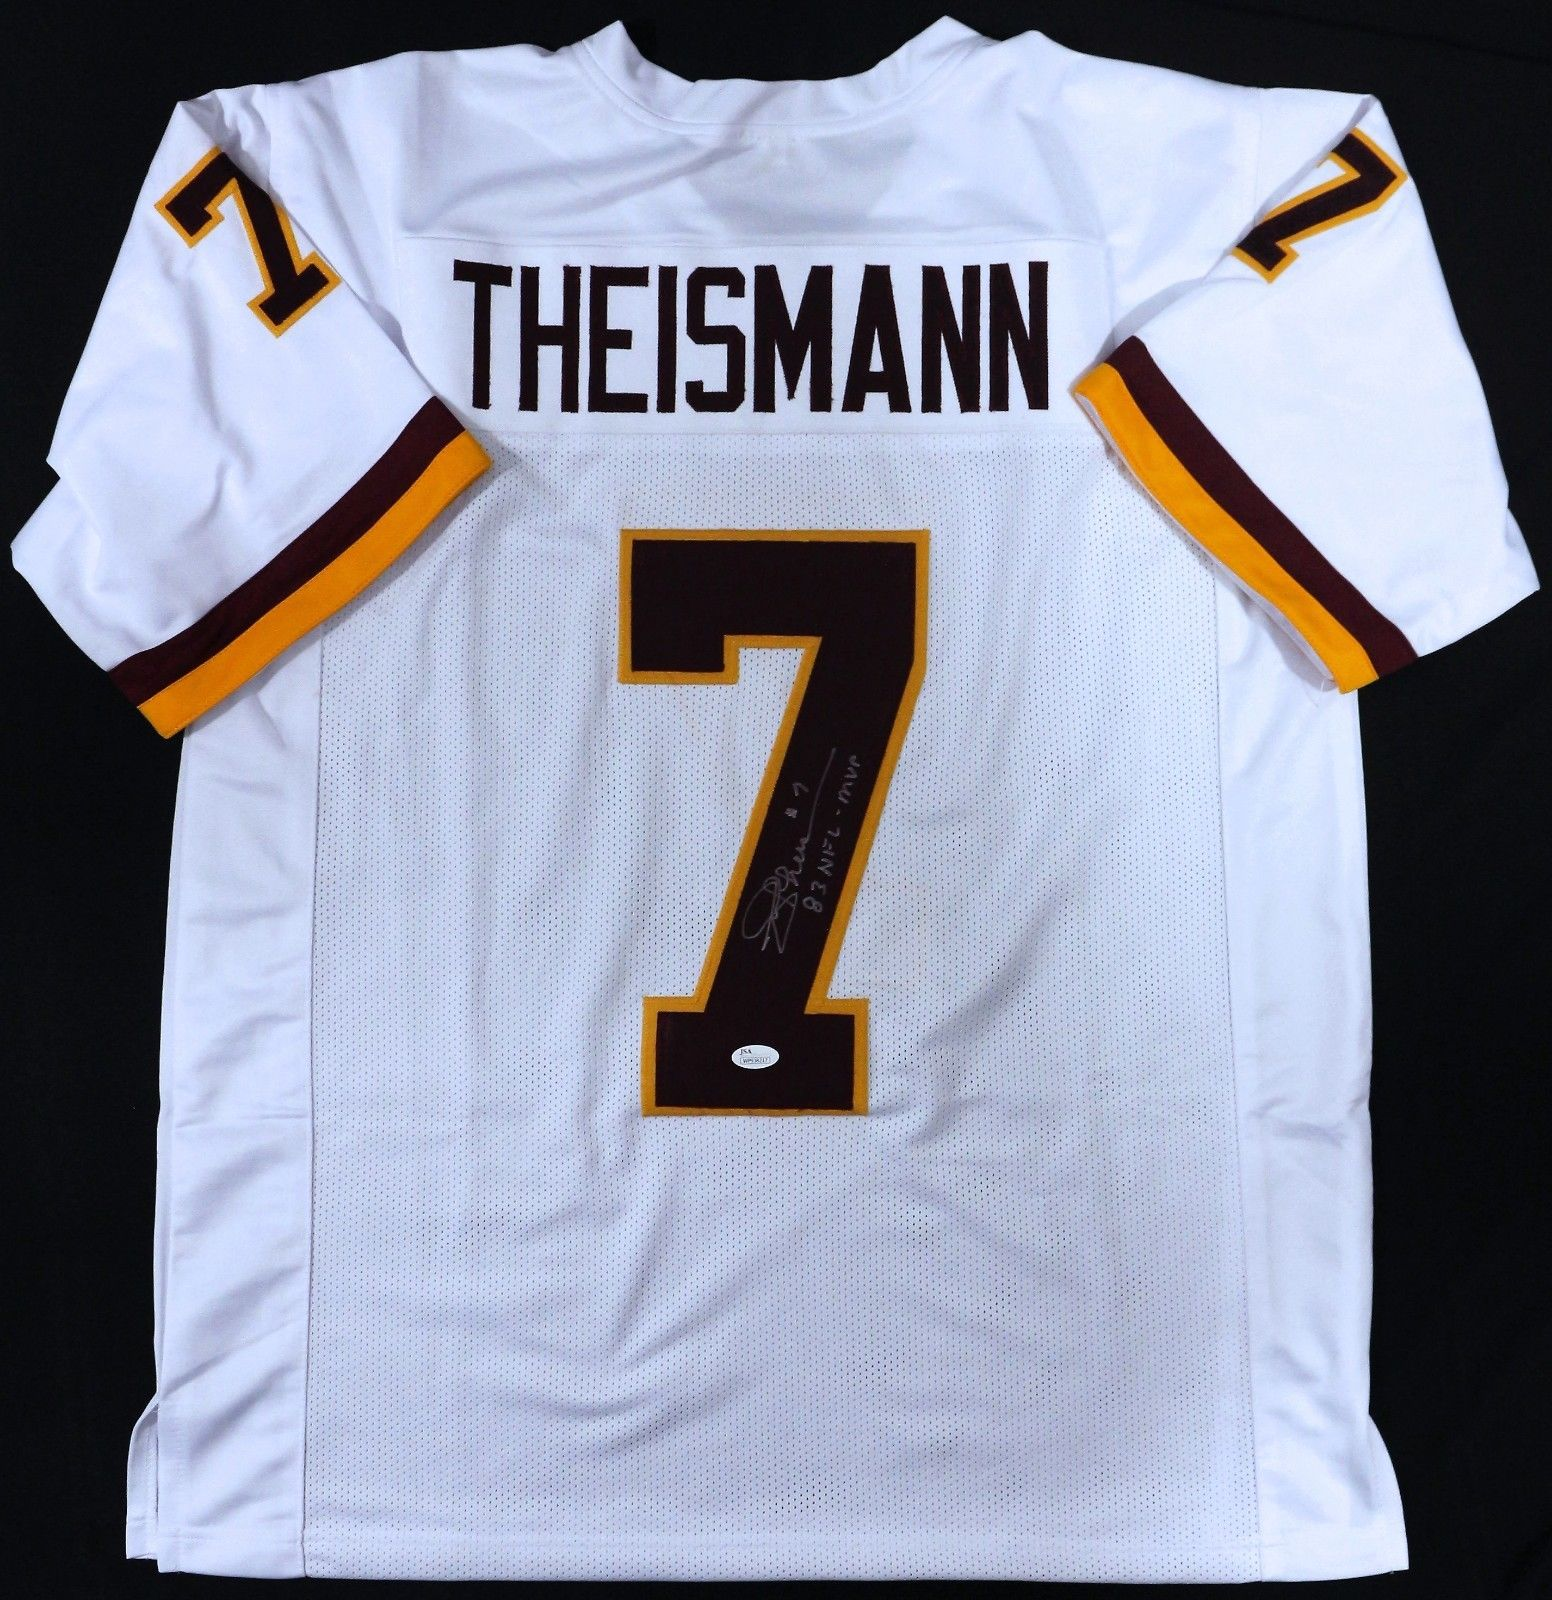 Joe Theismann signed Washington Redskins jersey